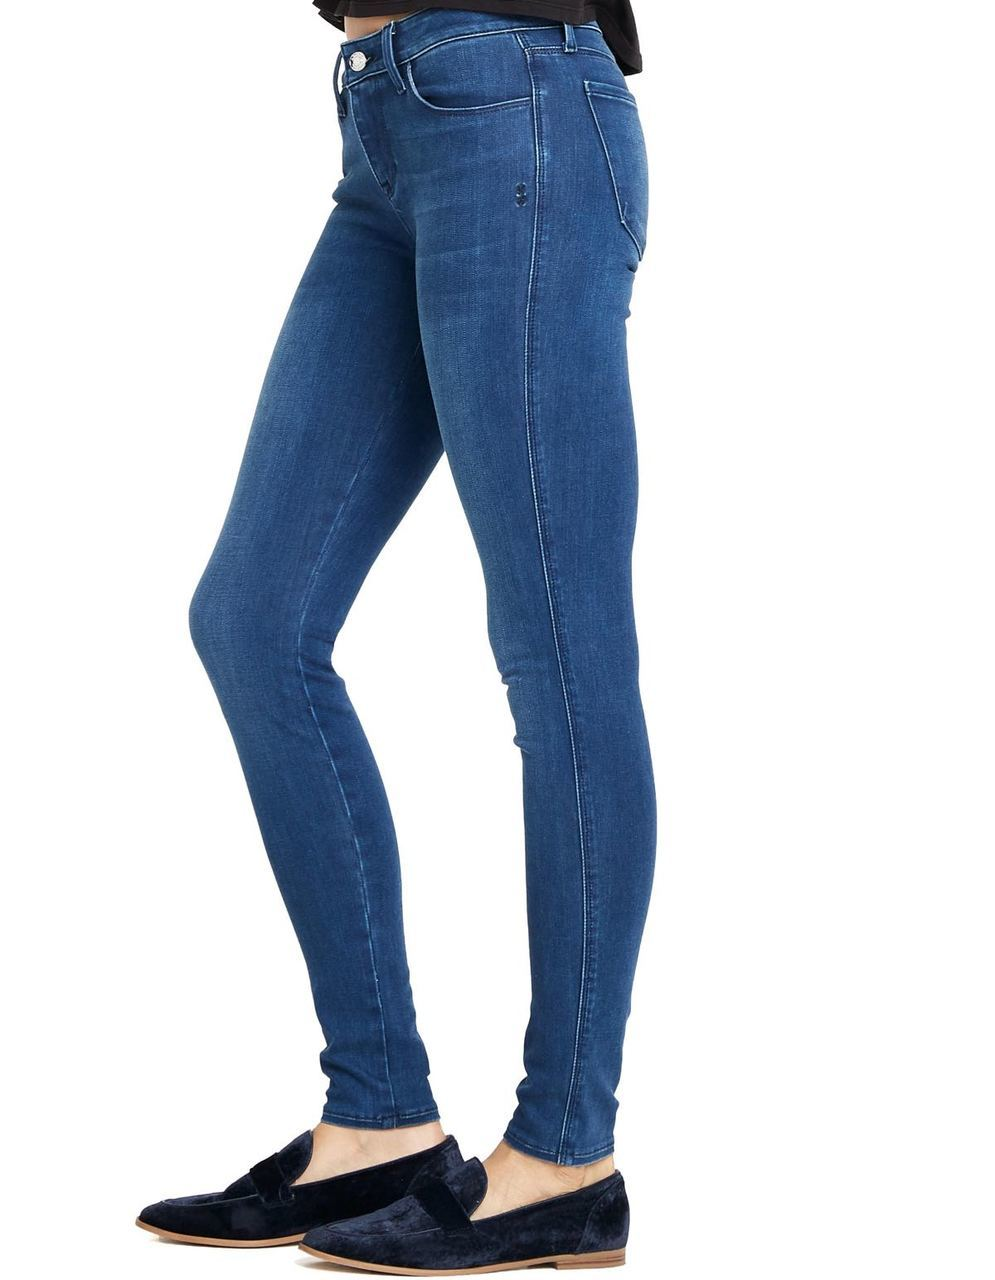 Most Comfortable Jeans For Women